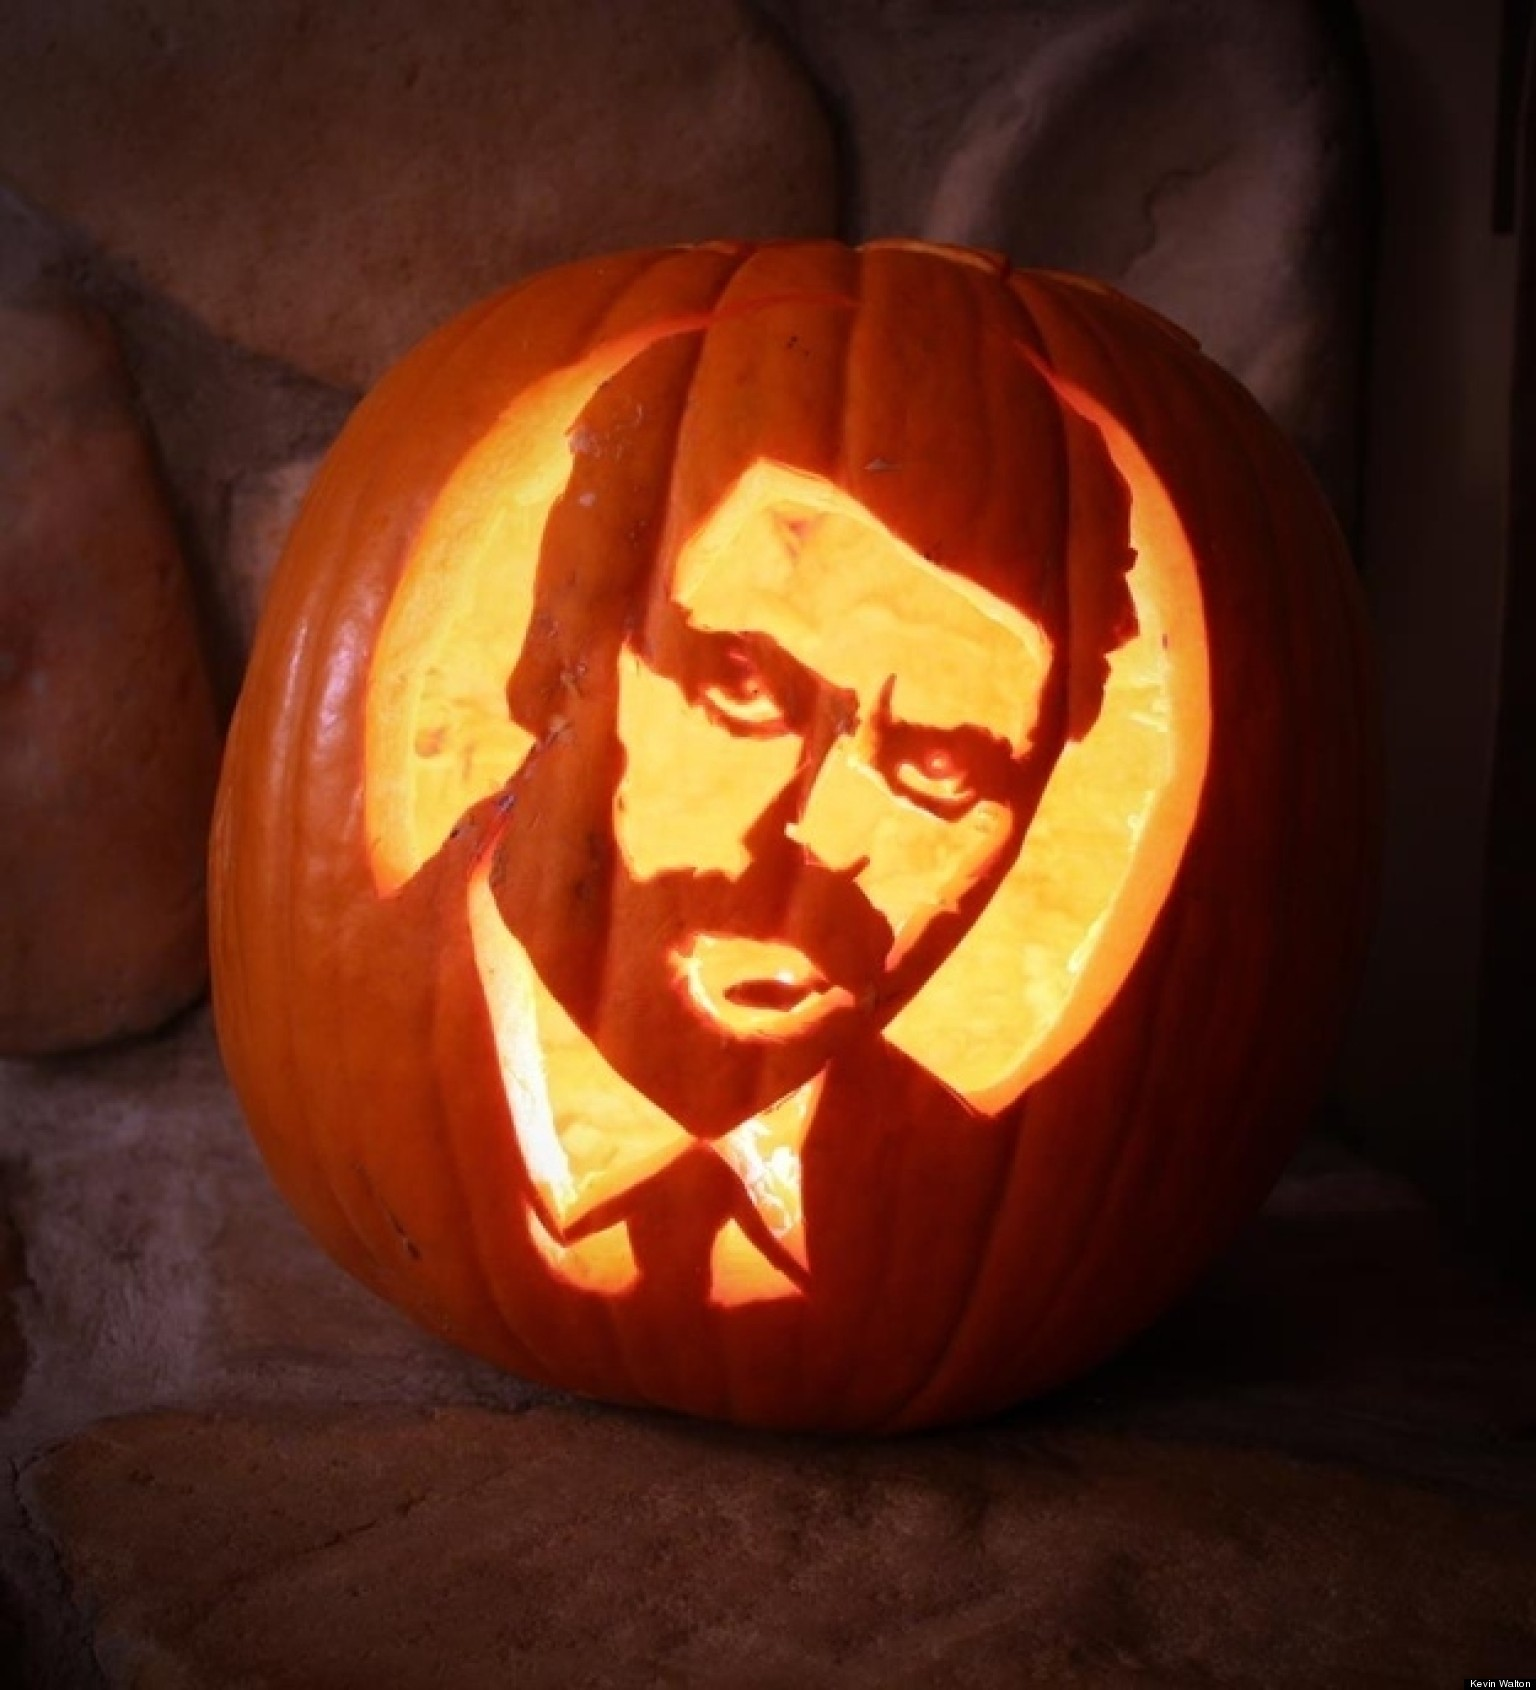 Pumpkin Carving Halloween Pumpkin Carvings Pop Culture Edition Photos Huffpost